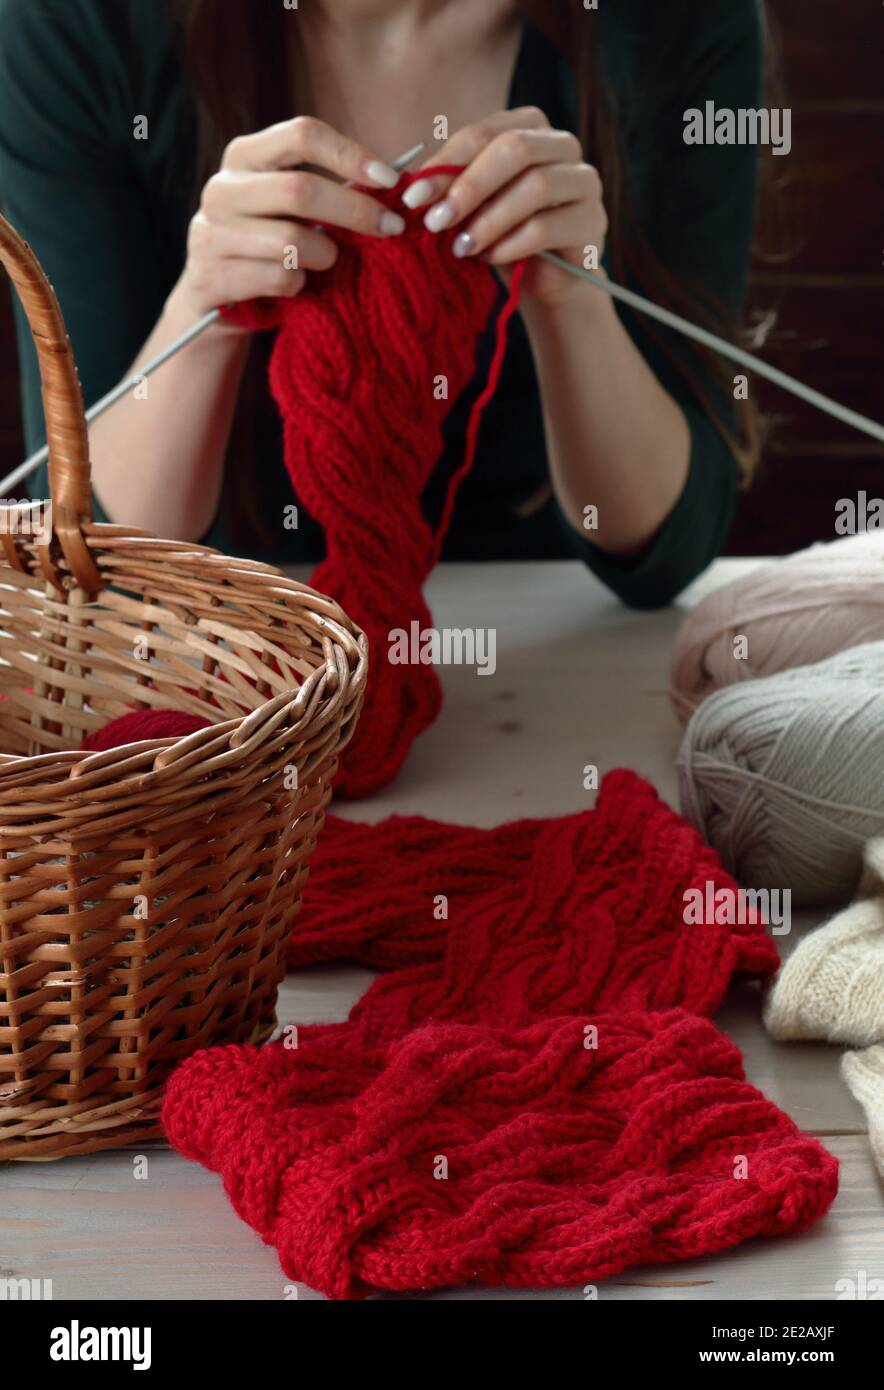 Cotton Wool High Resolution Stock Photography And Images Page 5 Alamy